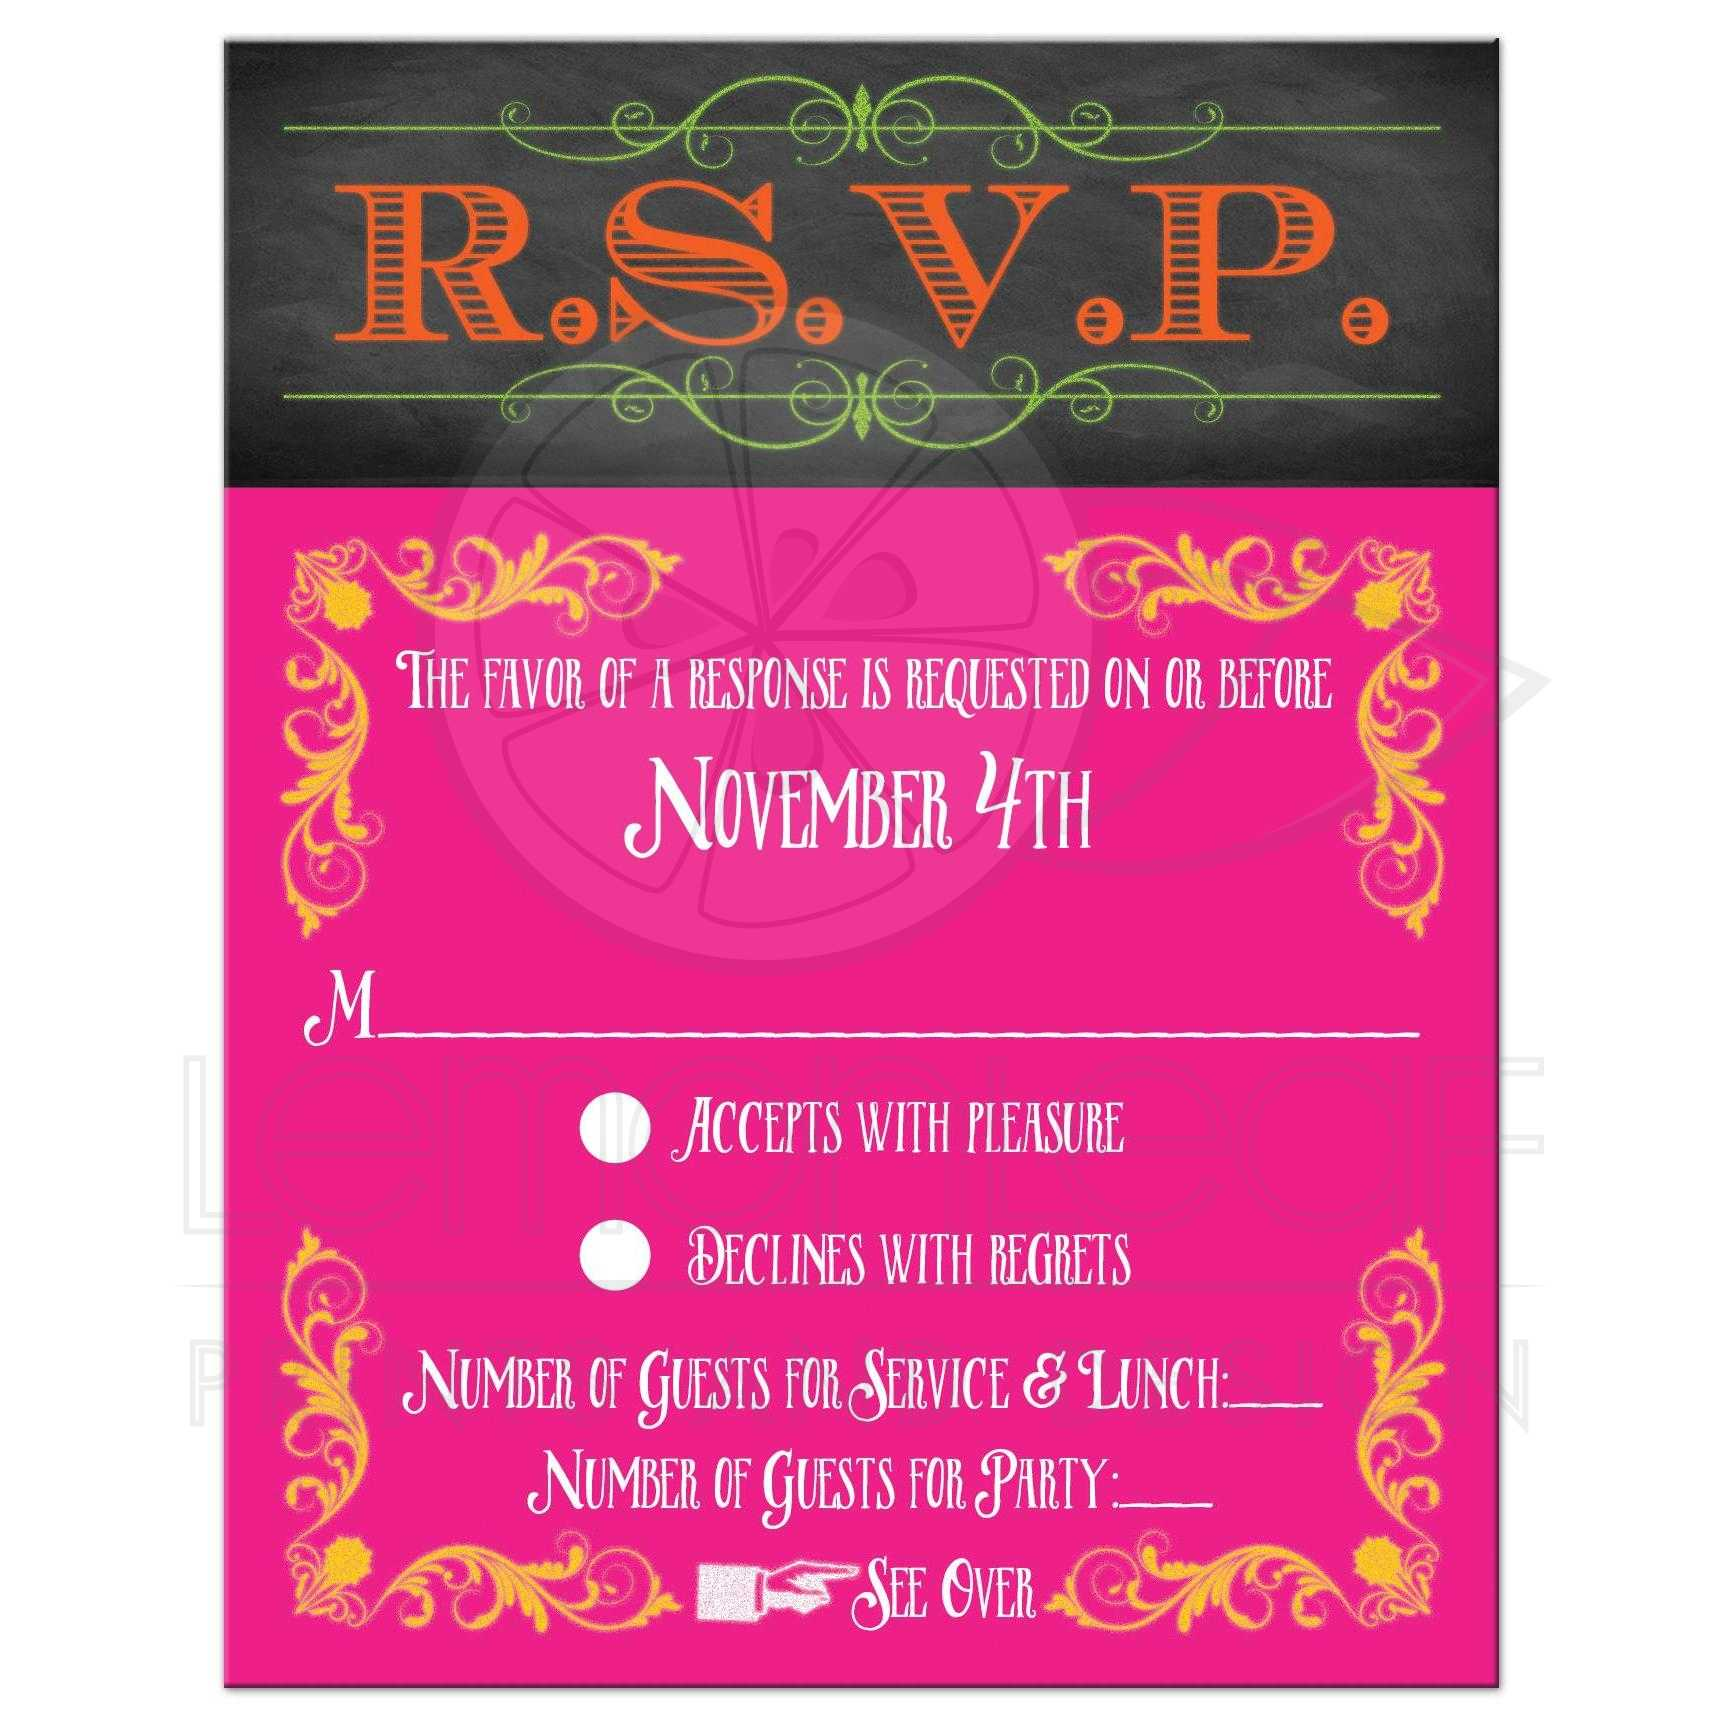 B'not Mitzvah RSVP Card | Neon Chalkboard | Vintage Scrolls and ...